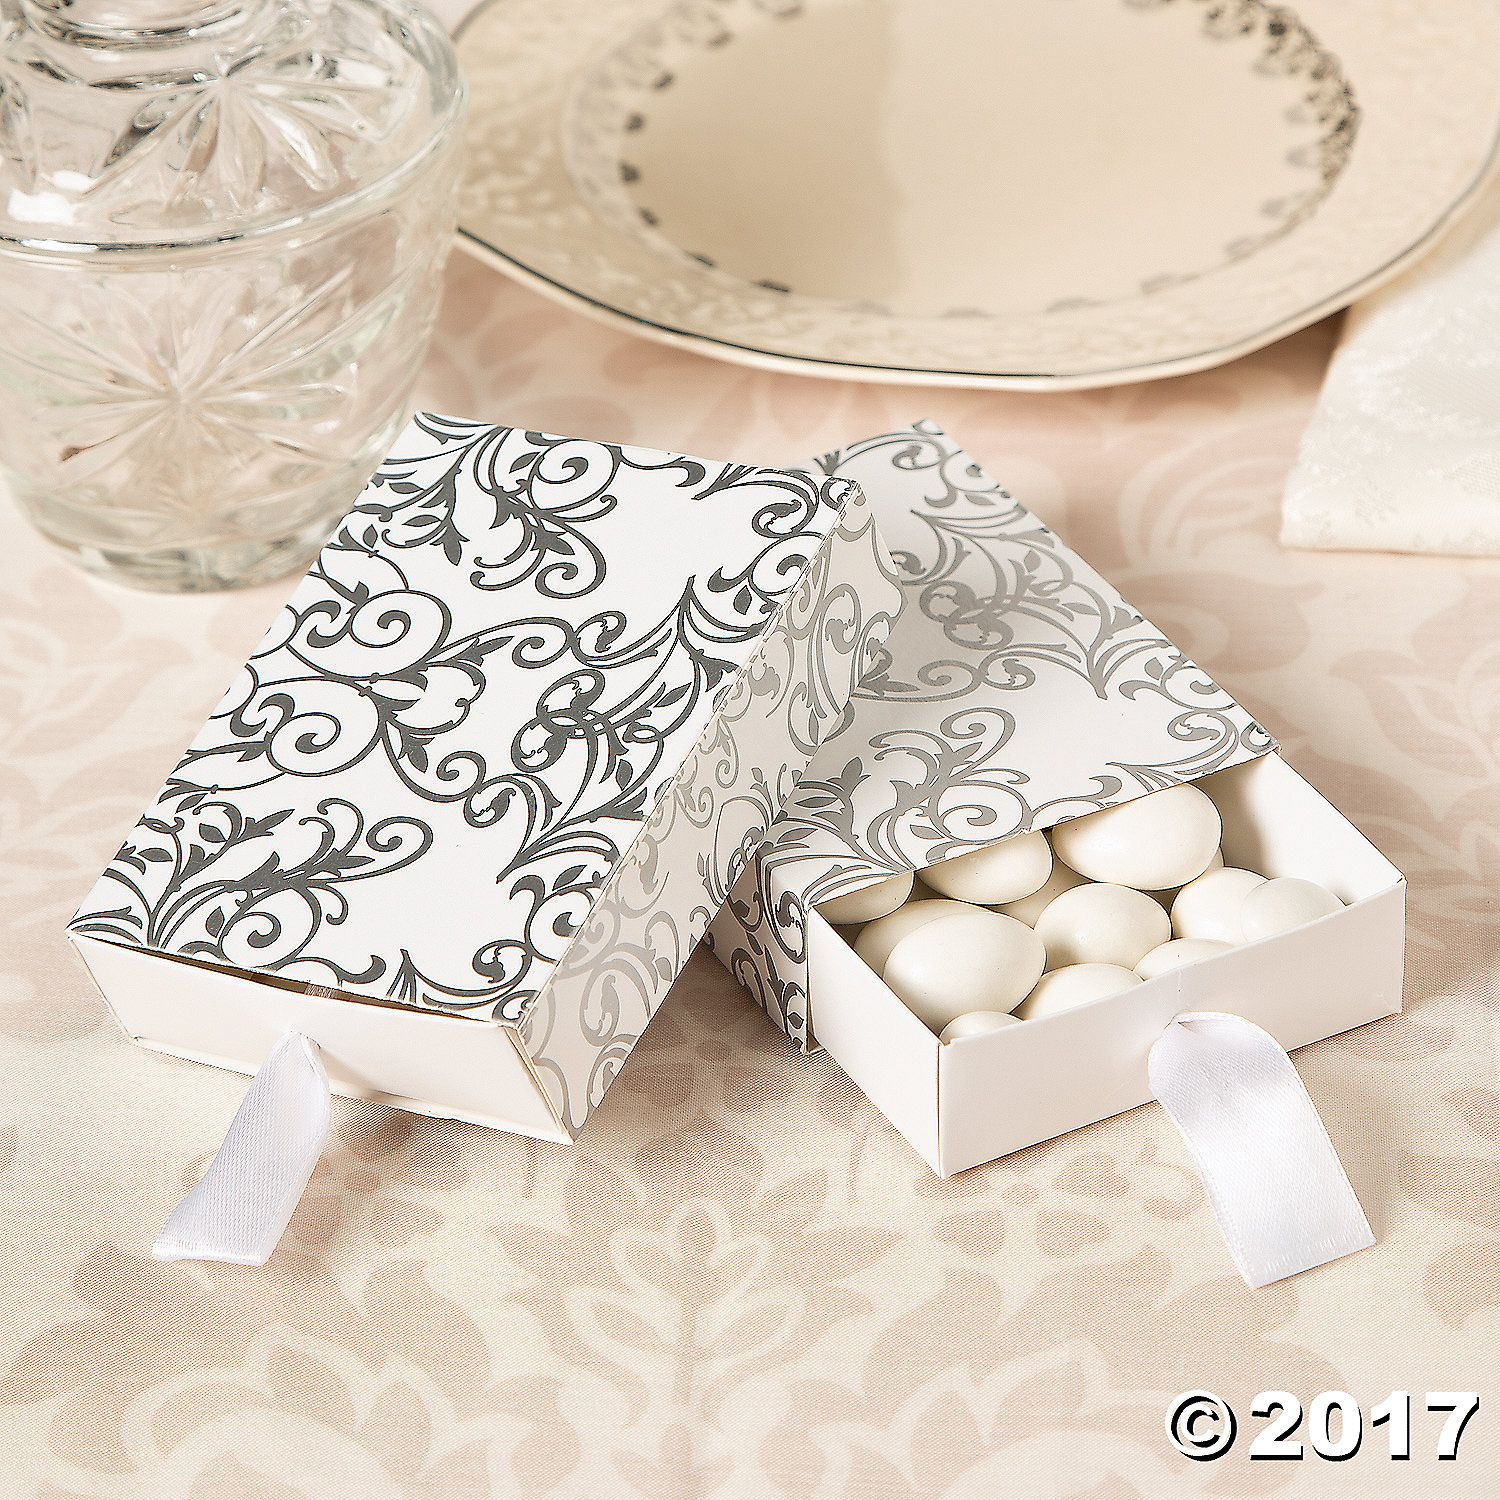 Fill these elegant wedding favor boxes with mints, candy and more ...